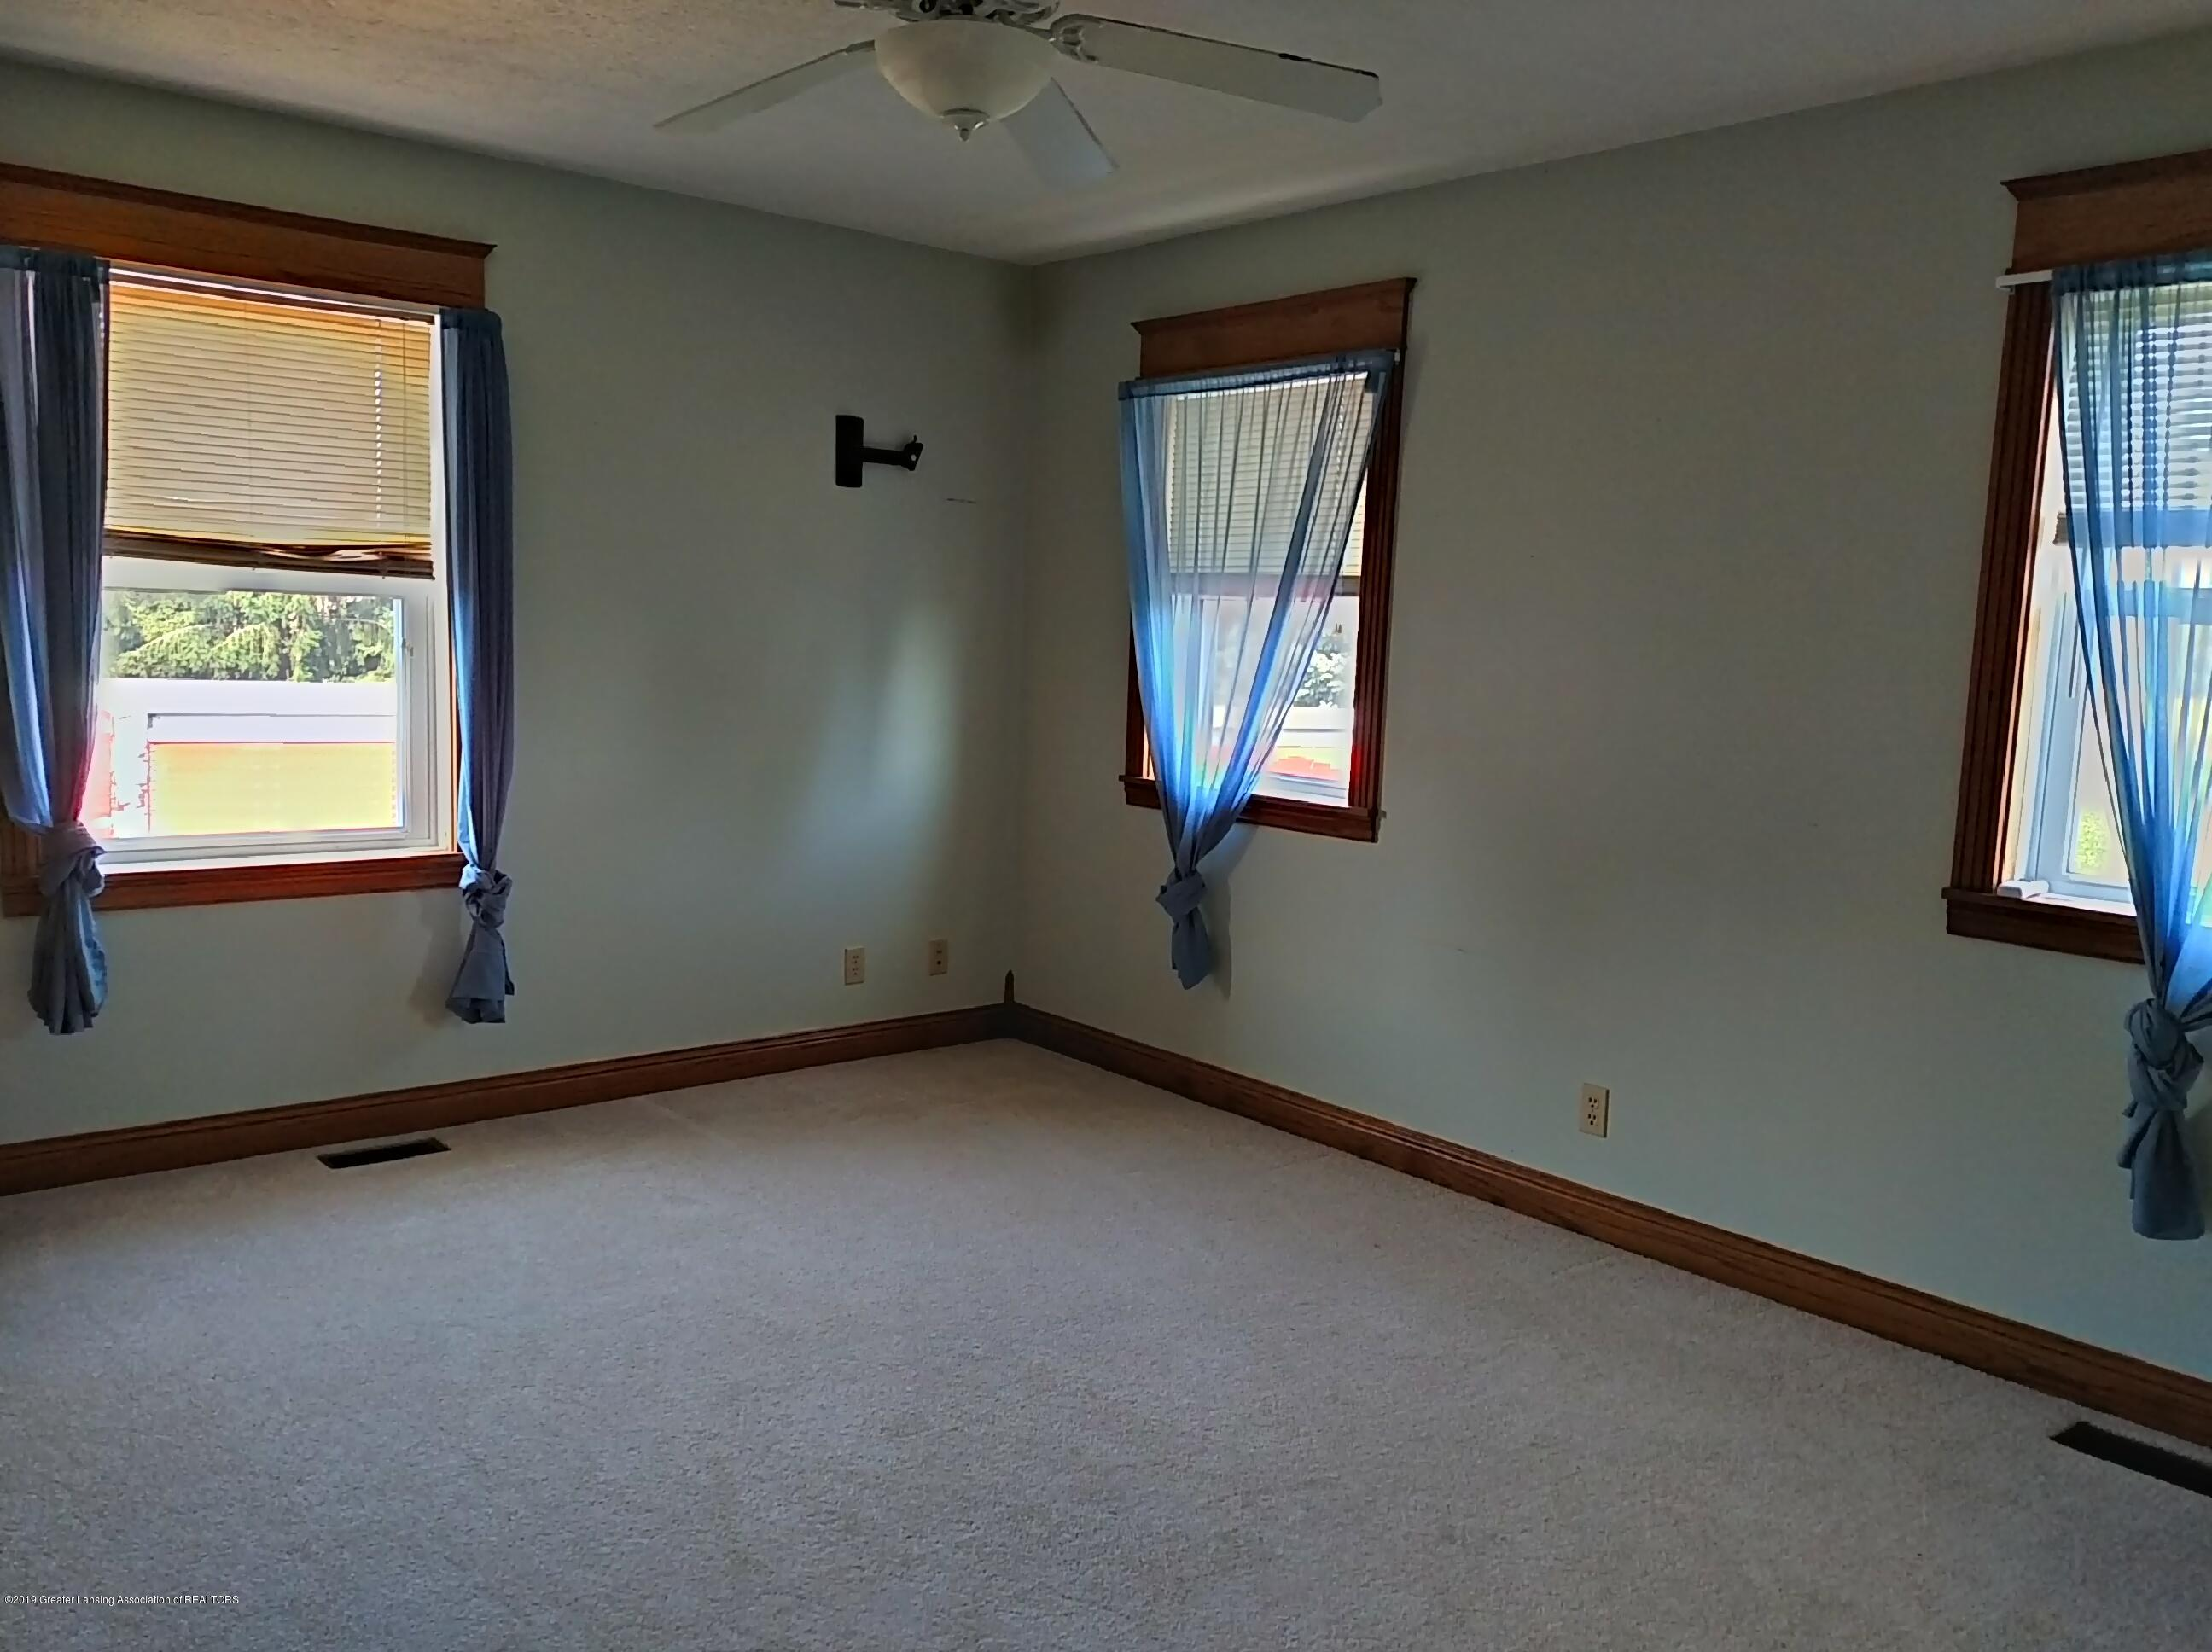 8283 S Forest Hill Rd - Bedroom - 22